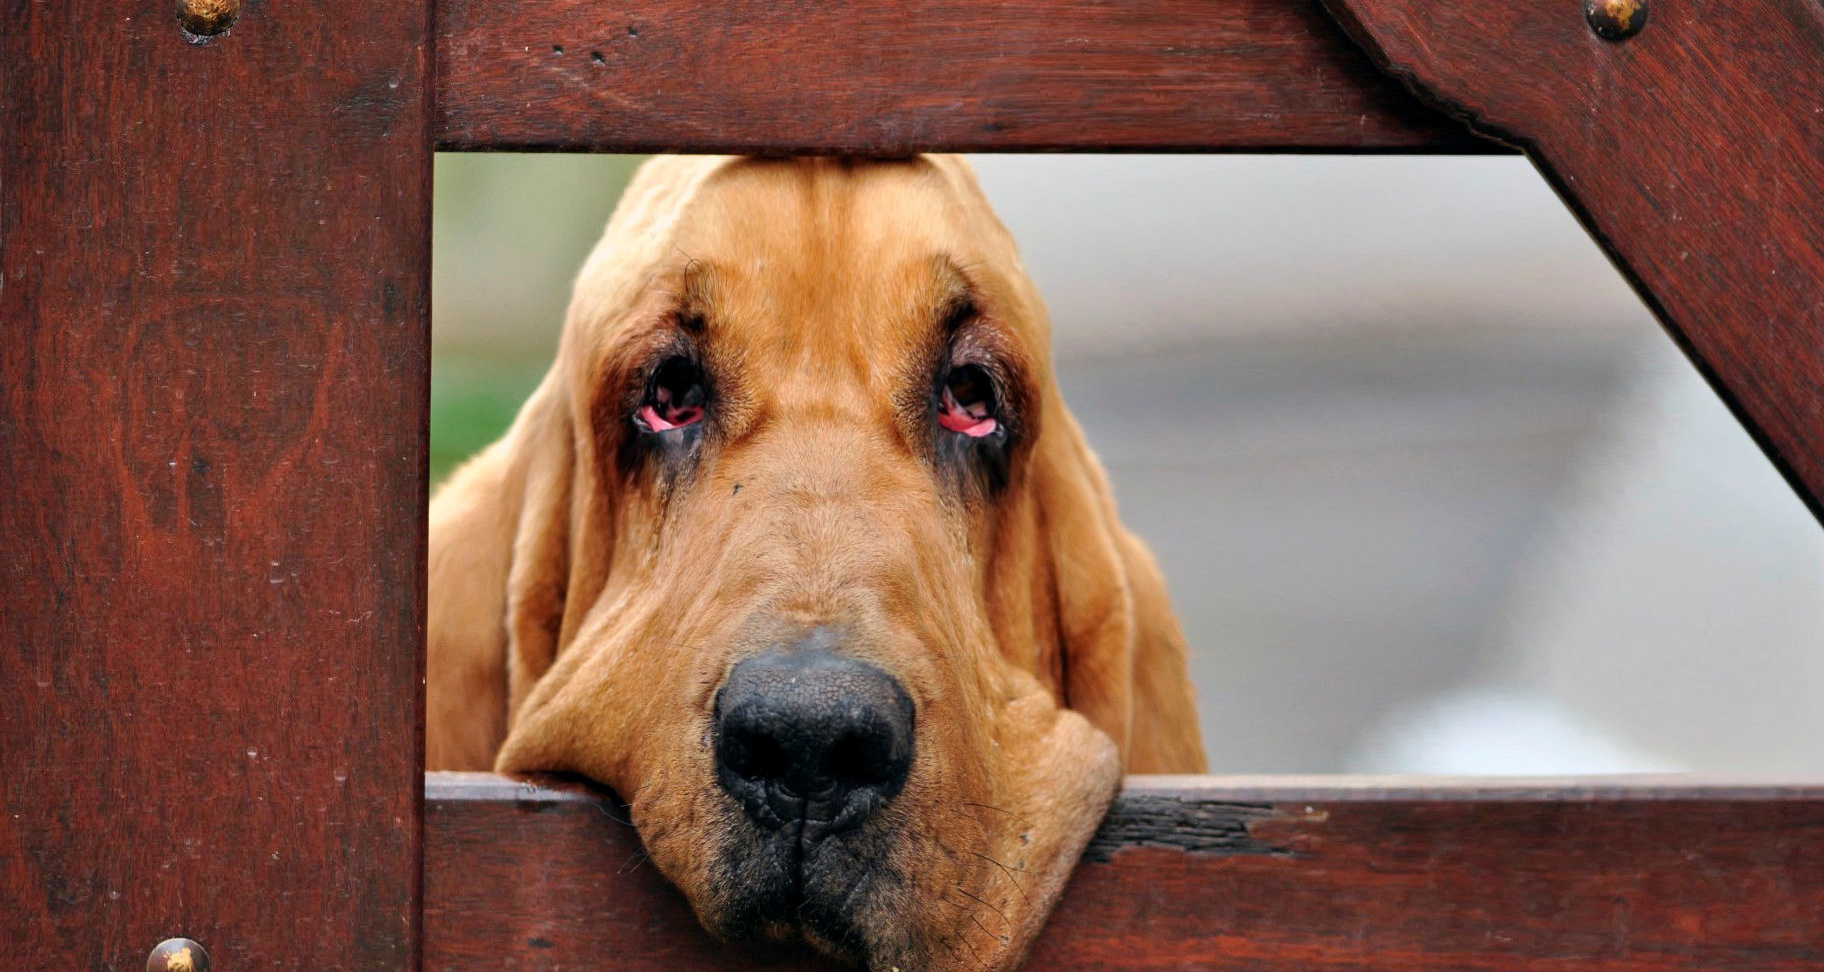 Bloodhound became sad wallpapers and images - wallpapers, pictures ...